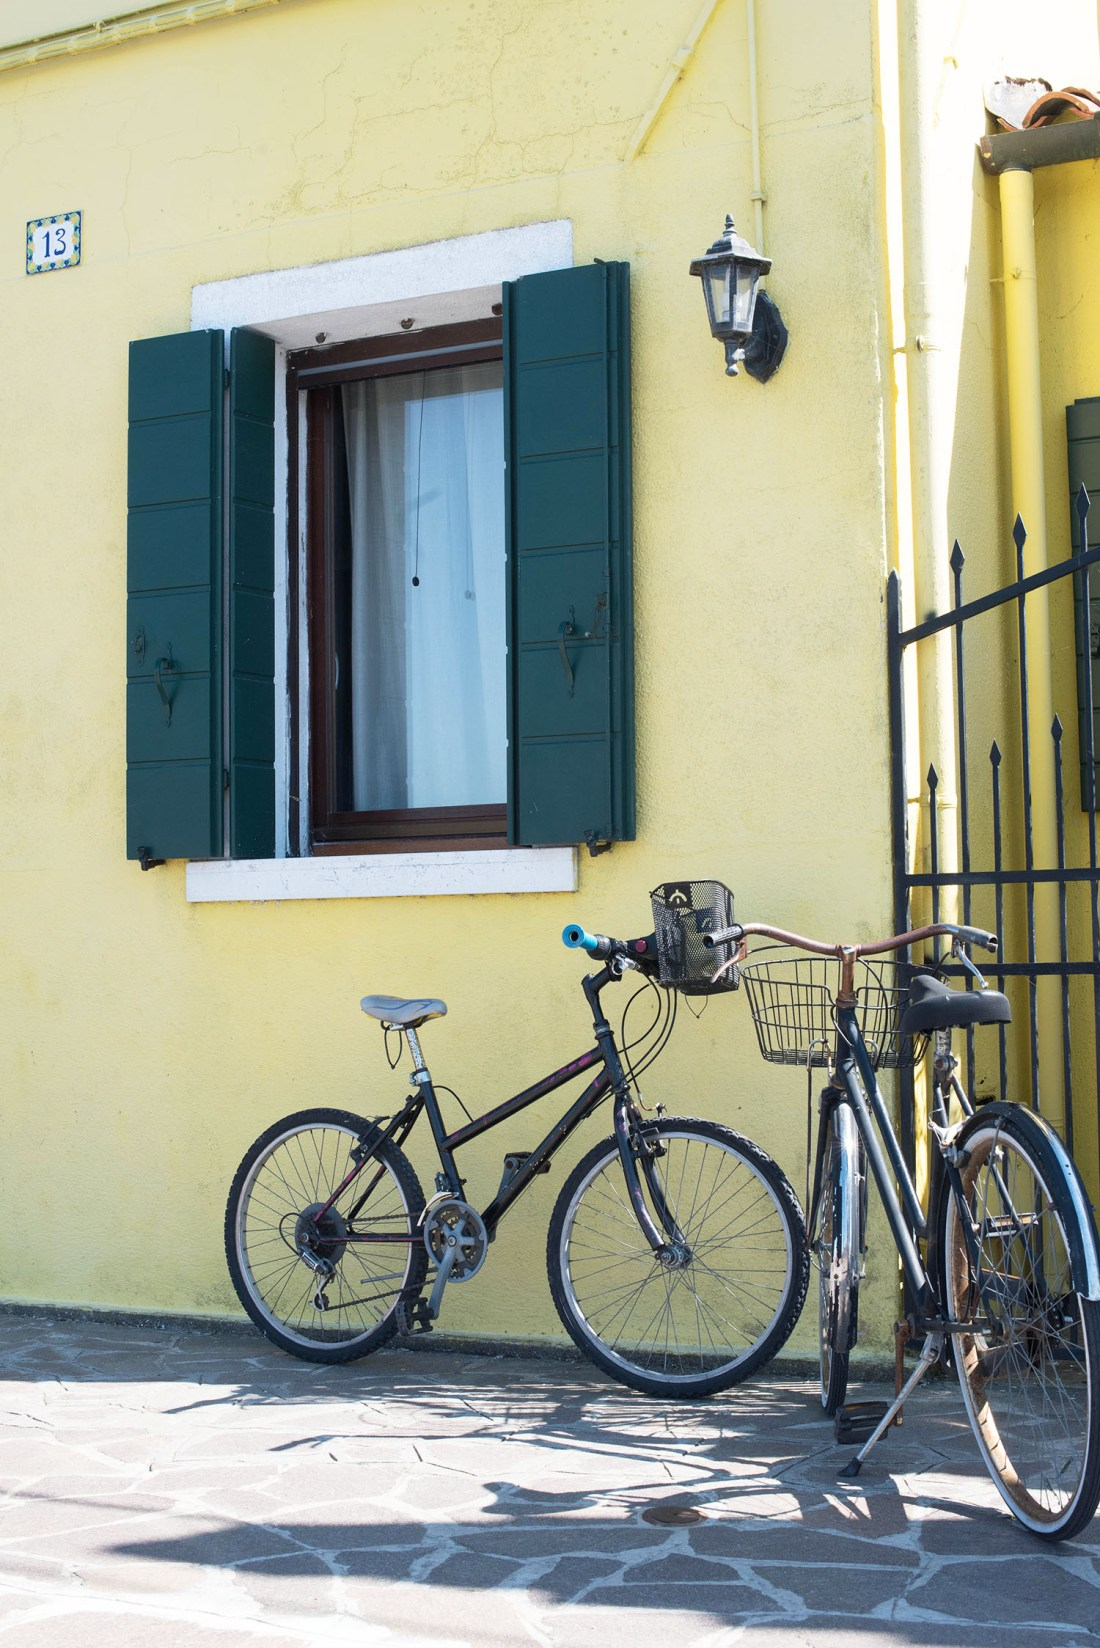 Two bicycles lean against a yellow house on the island of Mazzorabo in the Venetian Lagoon, captured by travel blogger Cee Fardoe of Coco & Vera